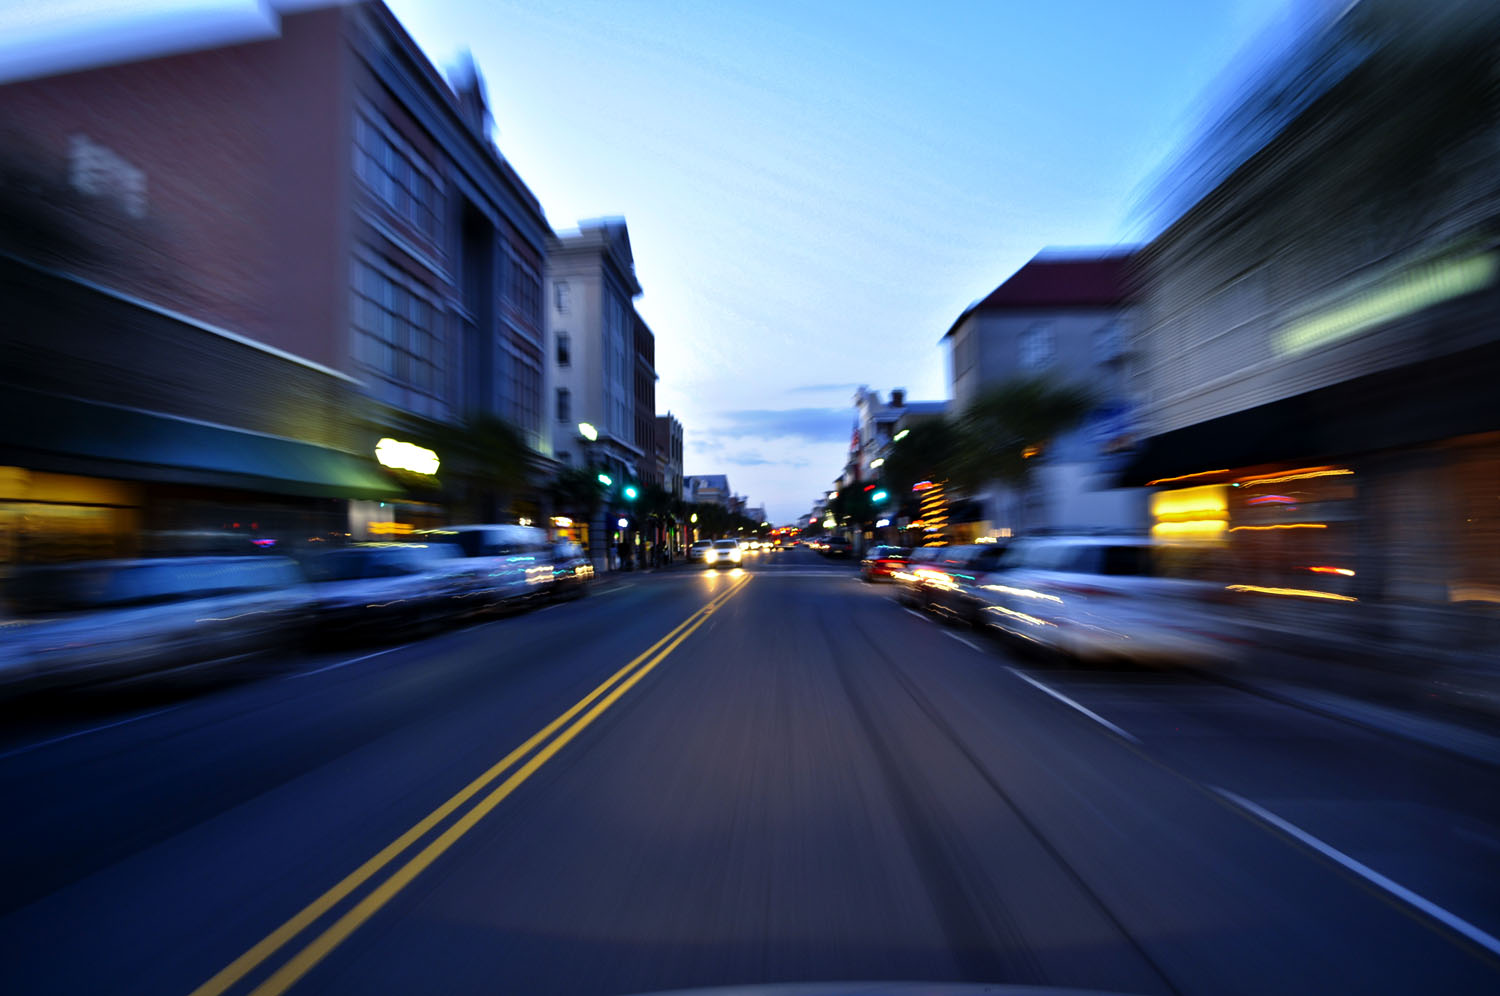 streets in motion photography blog of jared bramblett